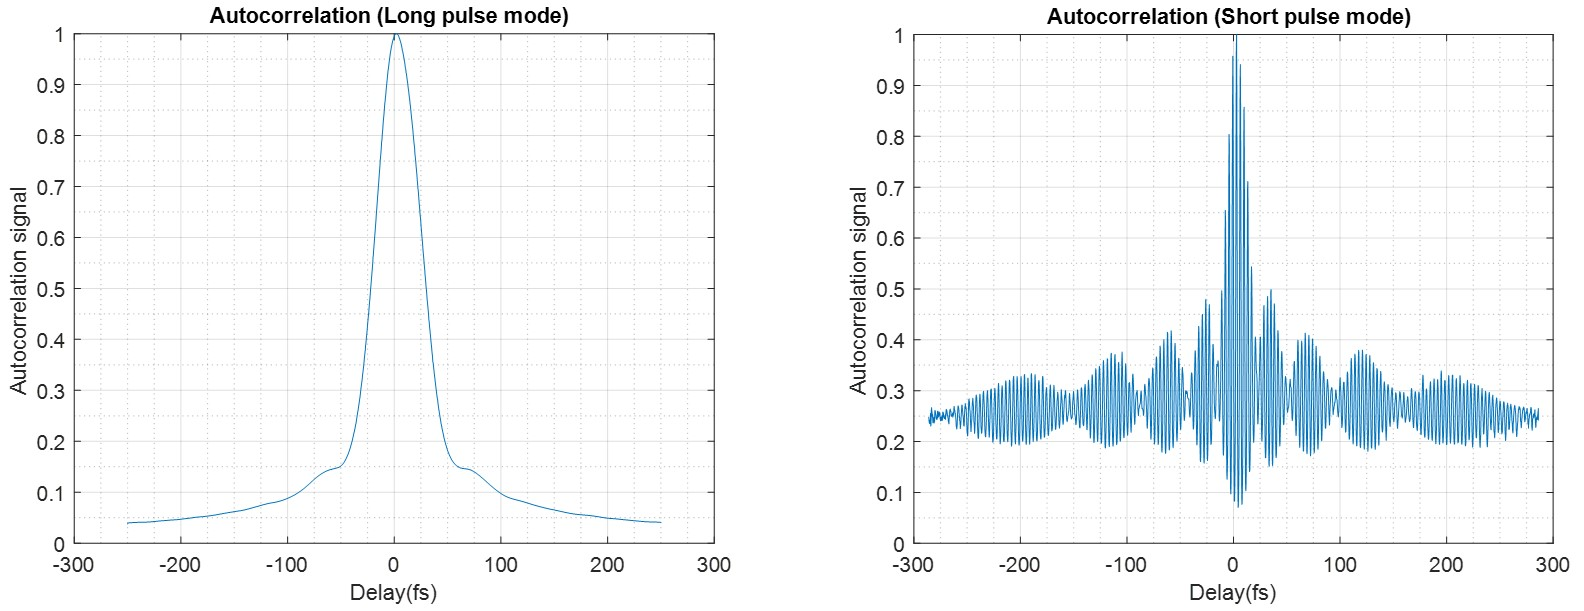 Typical autocorrelation signal for HR-1 in long pulse (47 fs ACF) and short pulse (10-14 fs ACF) modes.